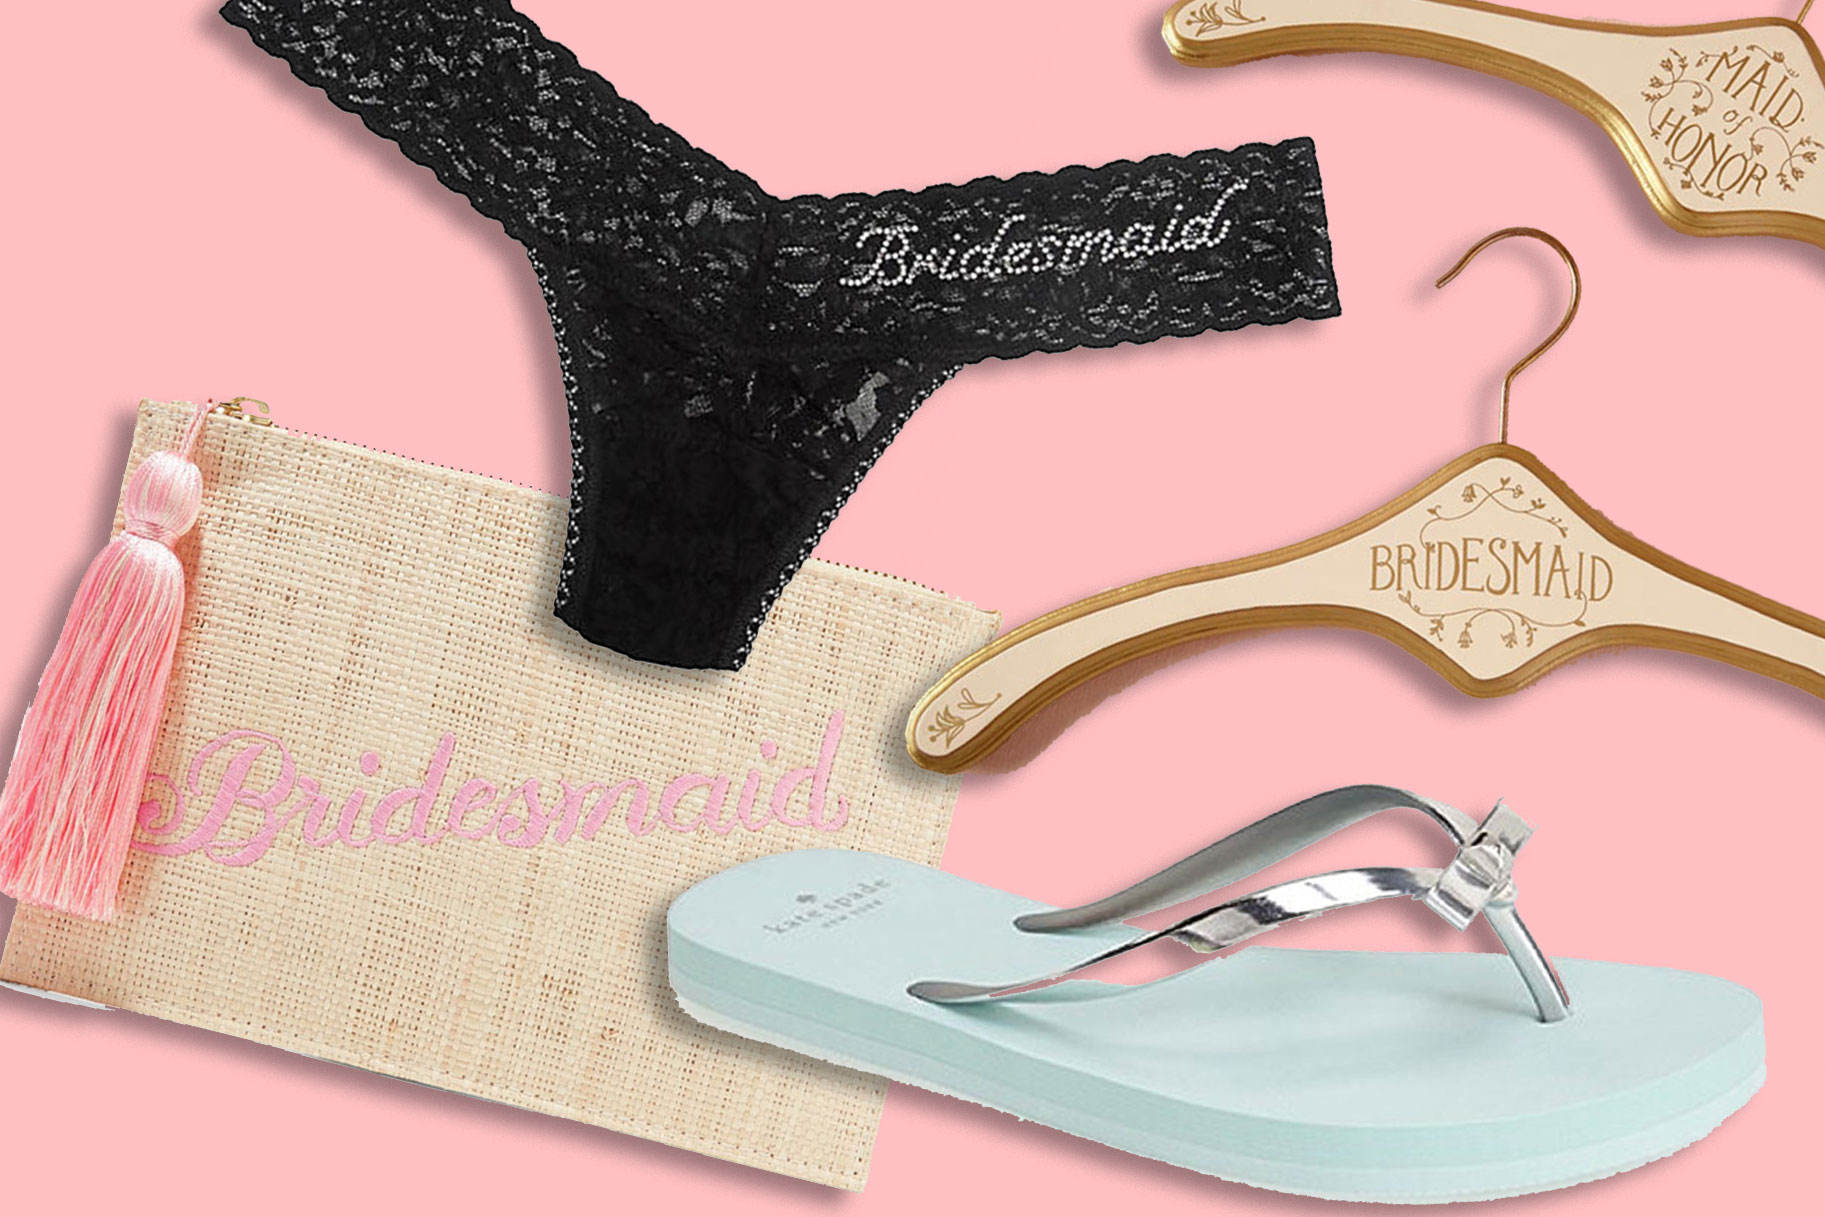 eebf9061c6b79 Crazy Cute Bridal Party Swag For All Those  Squad Photos You re Going to  Post